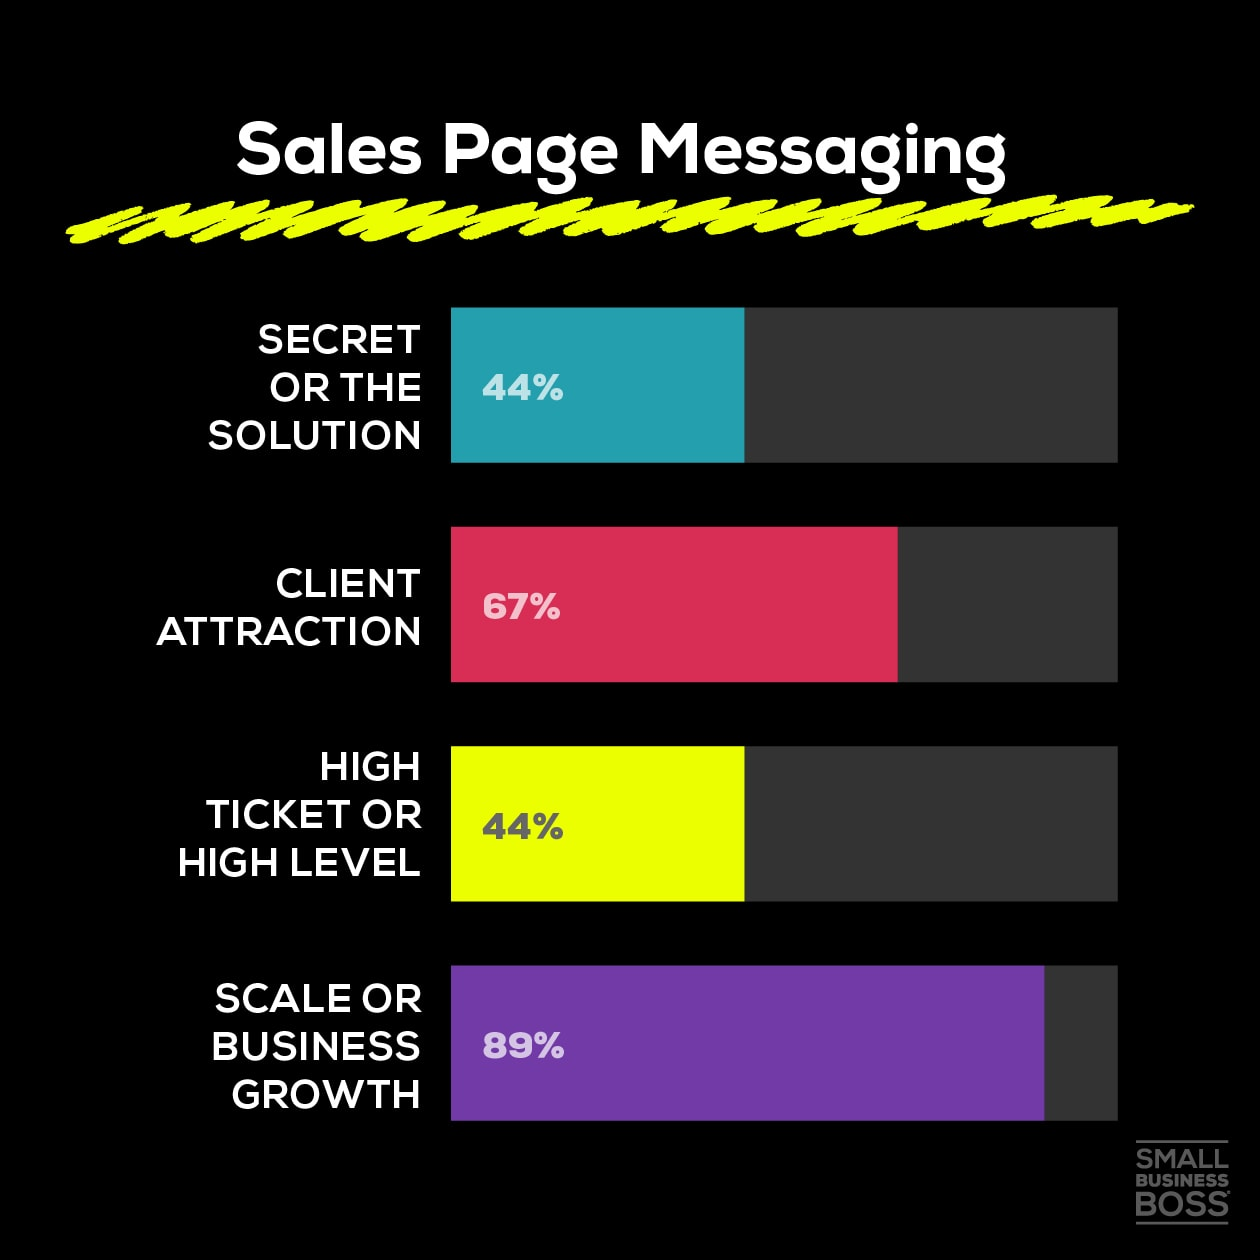 Sales Page Messaging